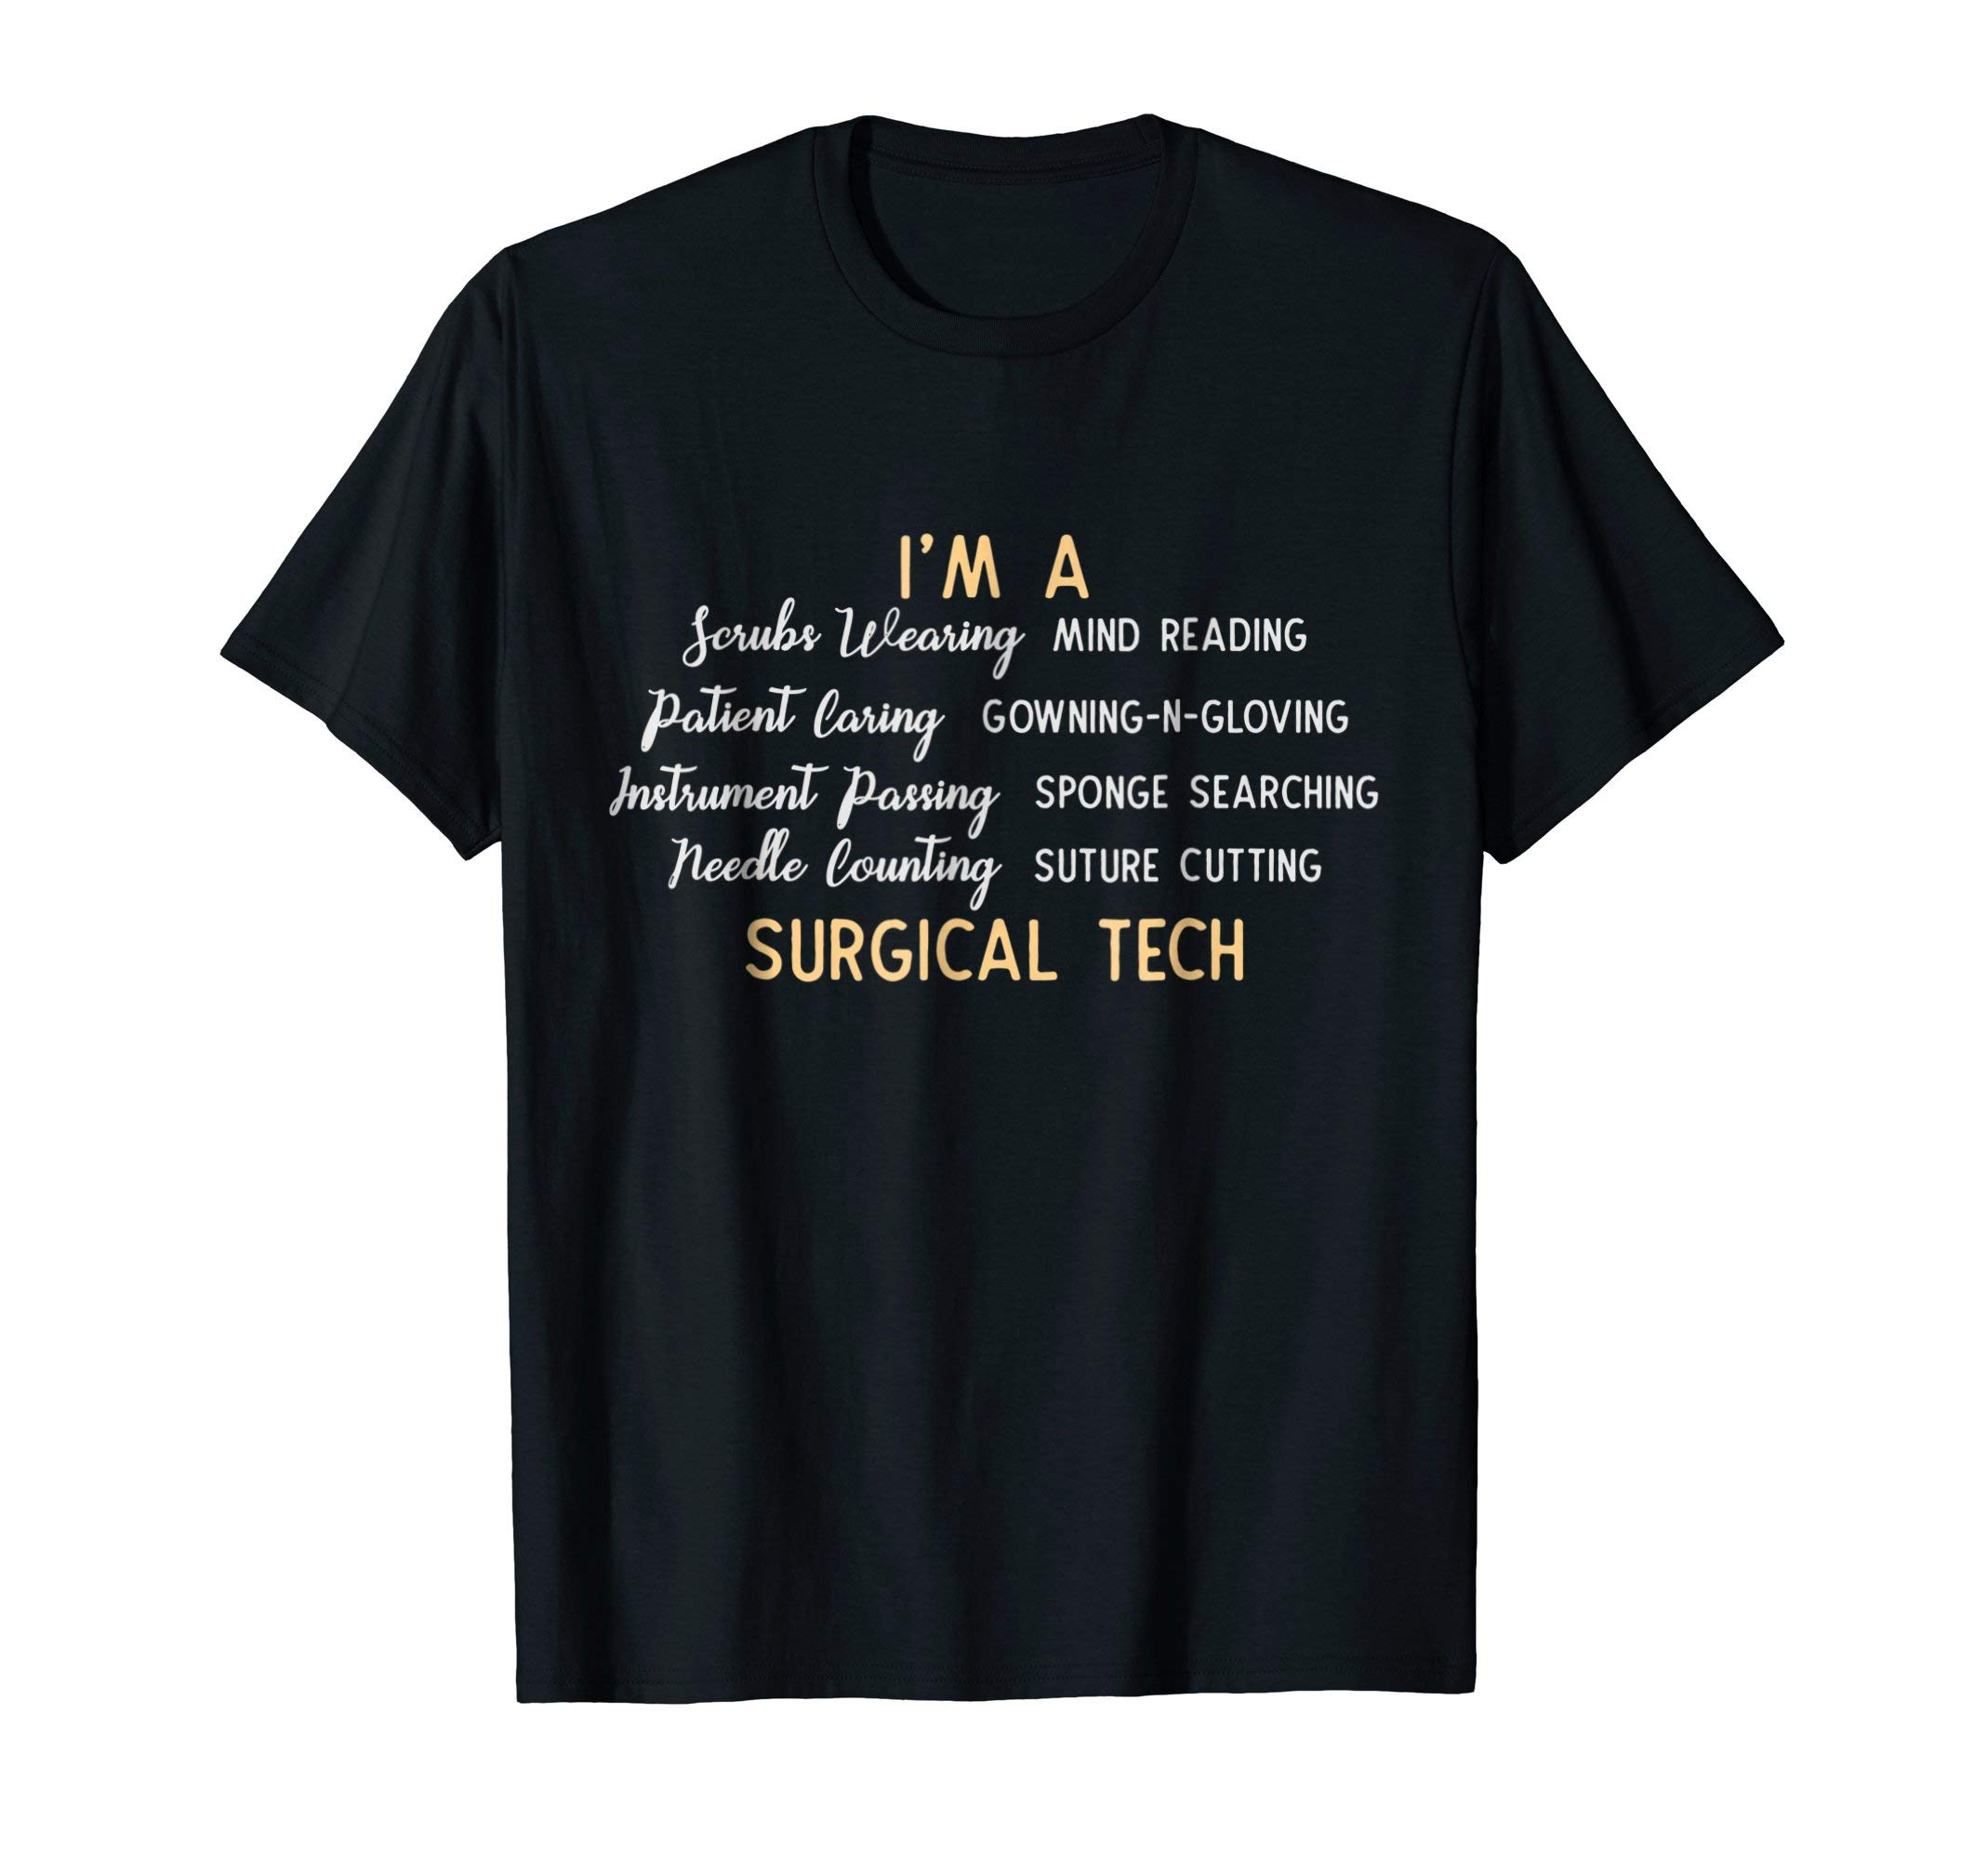 Funny Gift For Surgical Techs Shirt Scrubs Wearing by Cool Medical Shirts